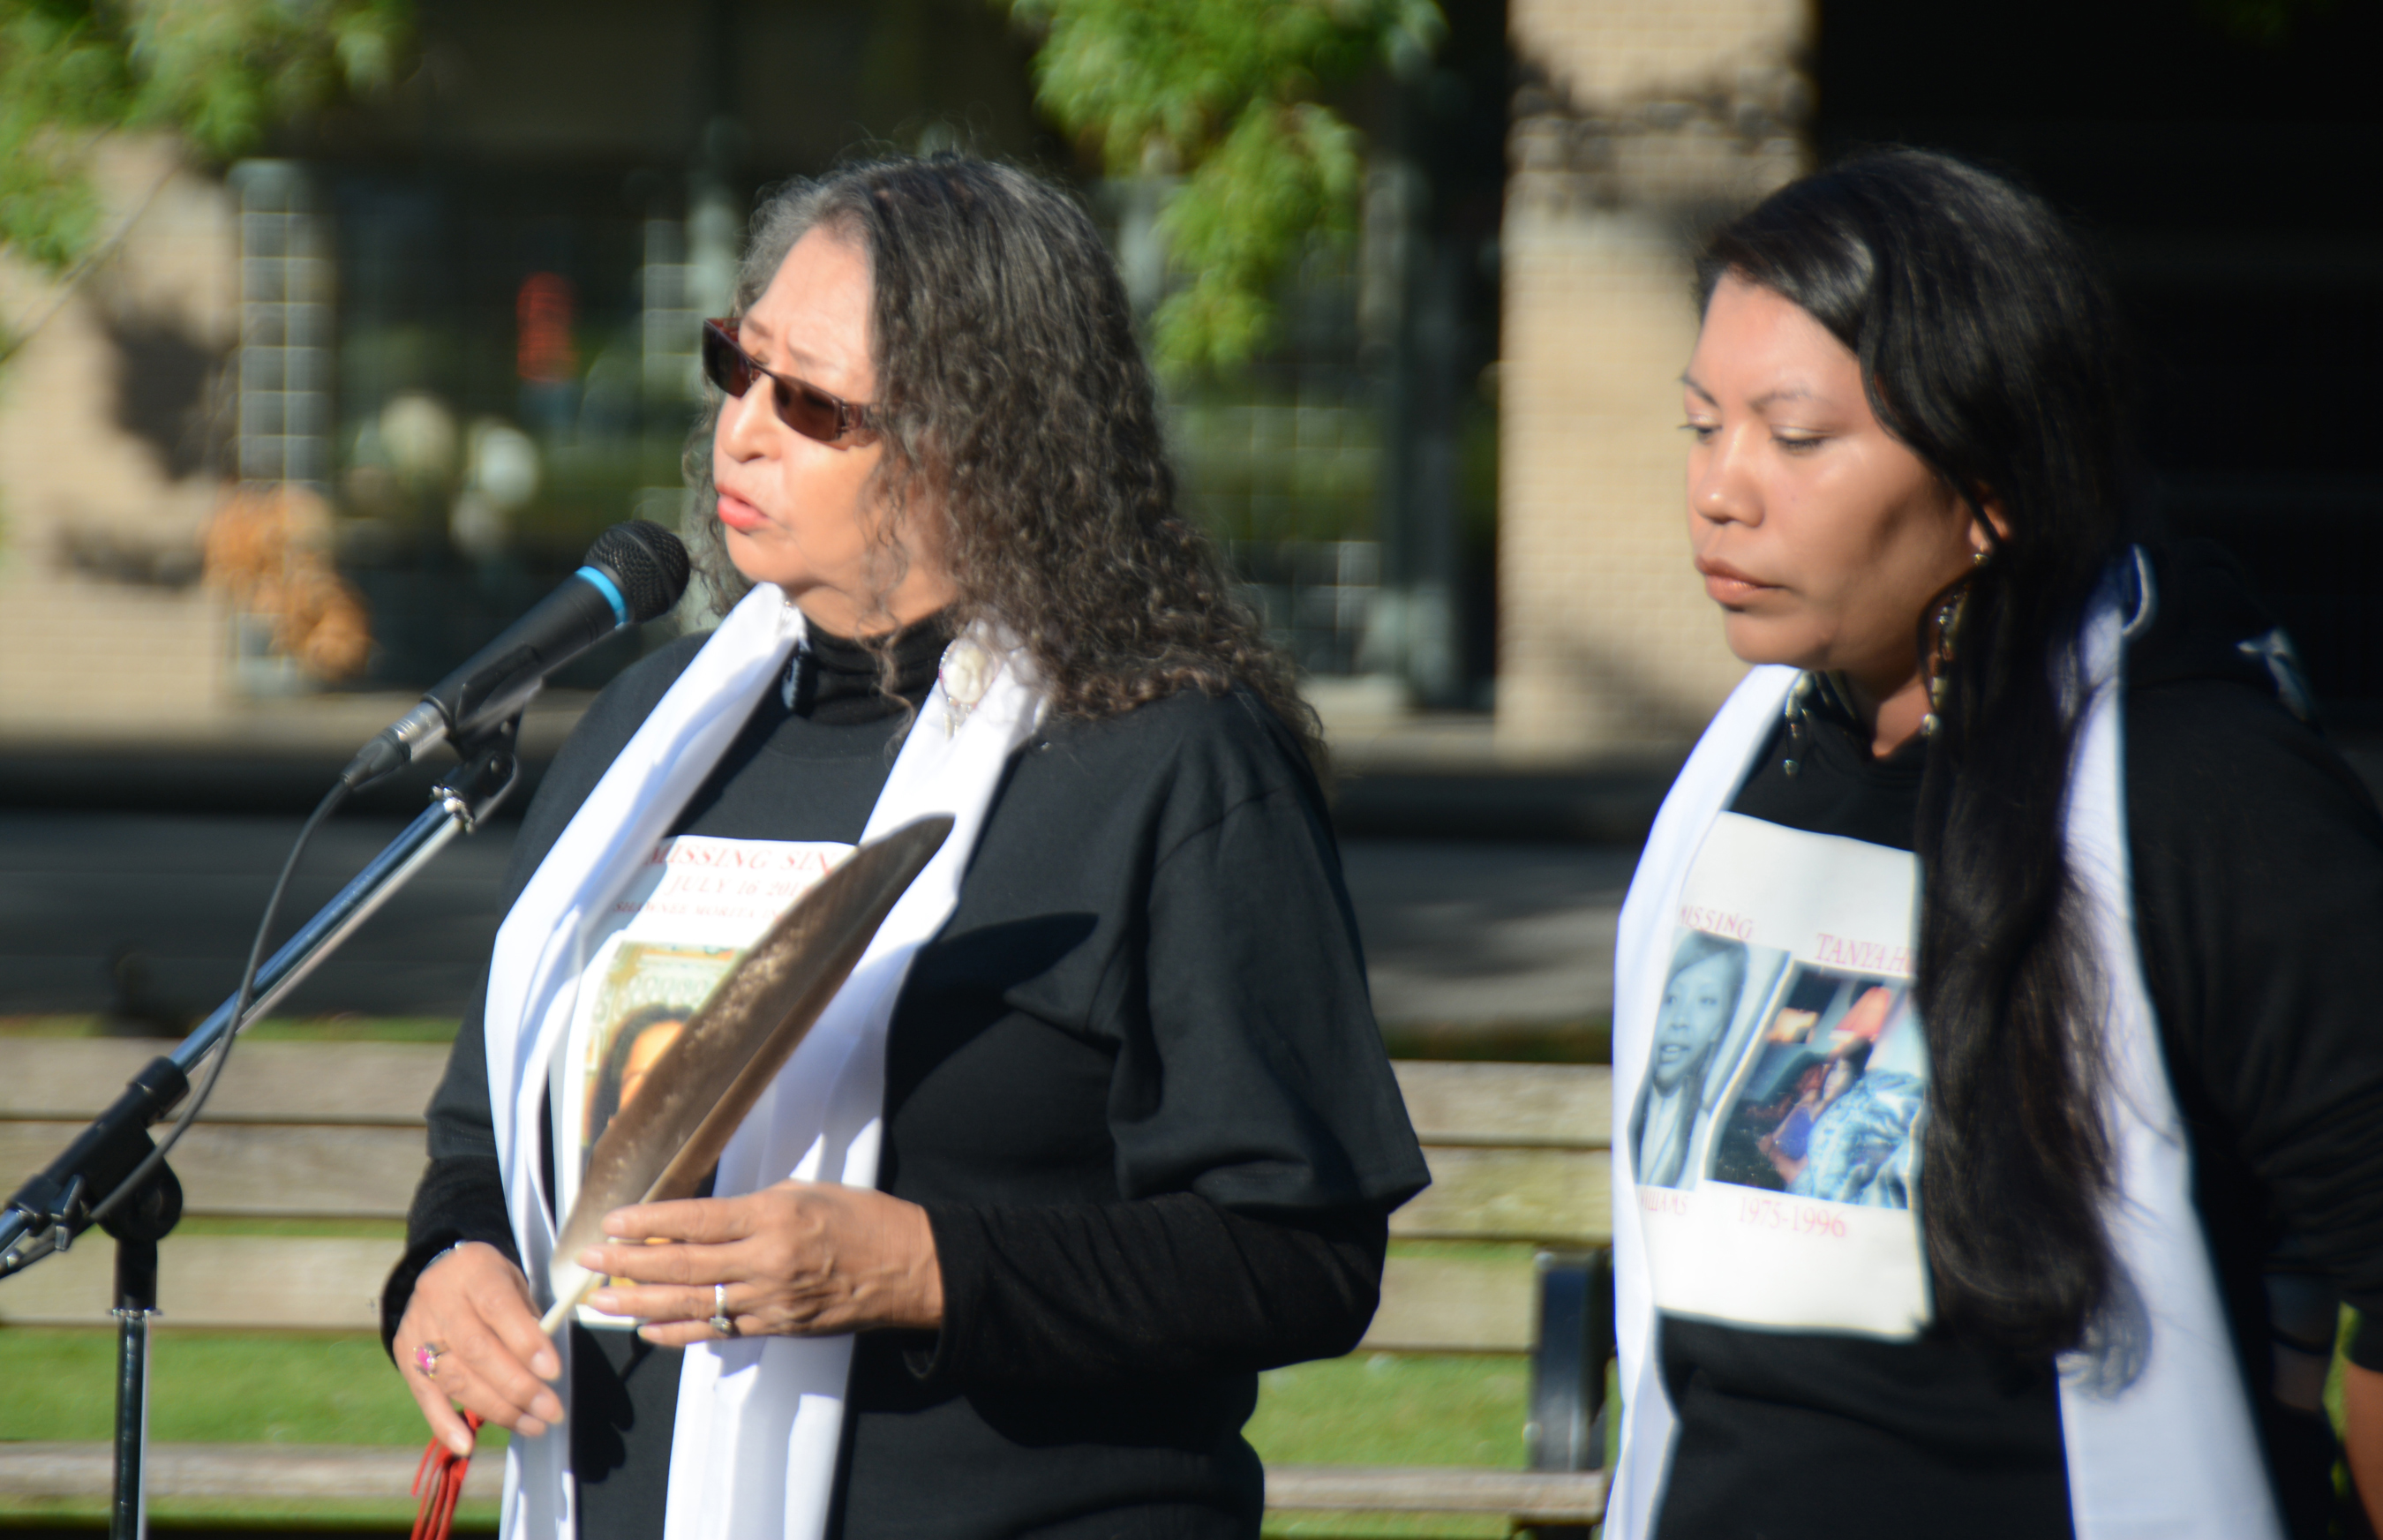 Linda Peters speaks about her missing niece, Shawnee Morita Inyallie, with Lorelei Williams at the Petition Ceremony and Press Conference, Sept 27 2018